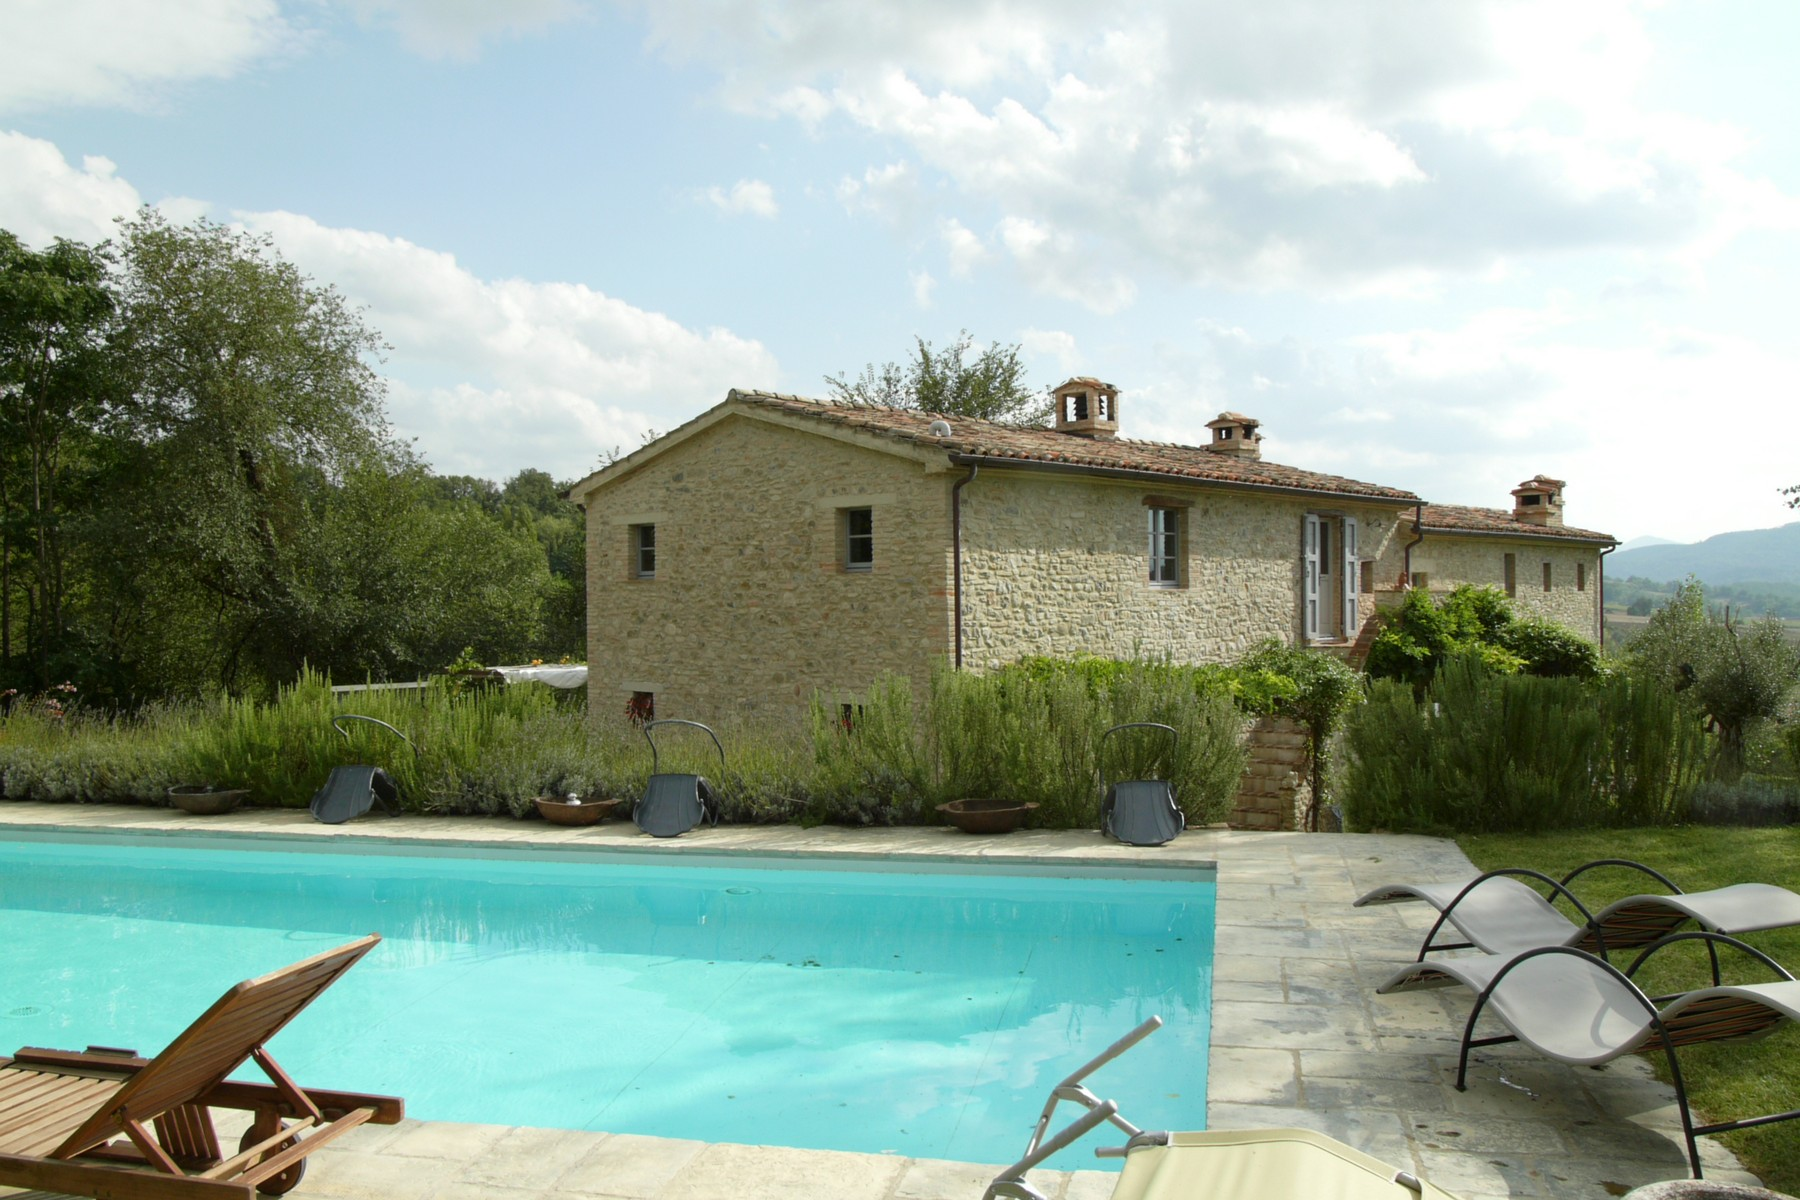 Single Family Home for Sale at Stone farmhouse with stunning views Voc. Caibizzocco Montone, Perugia 06014 Italy